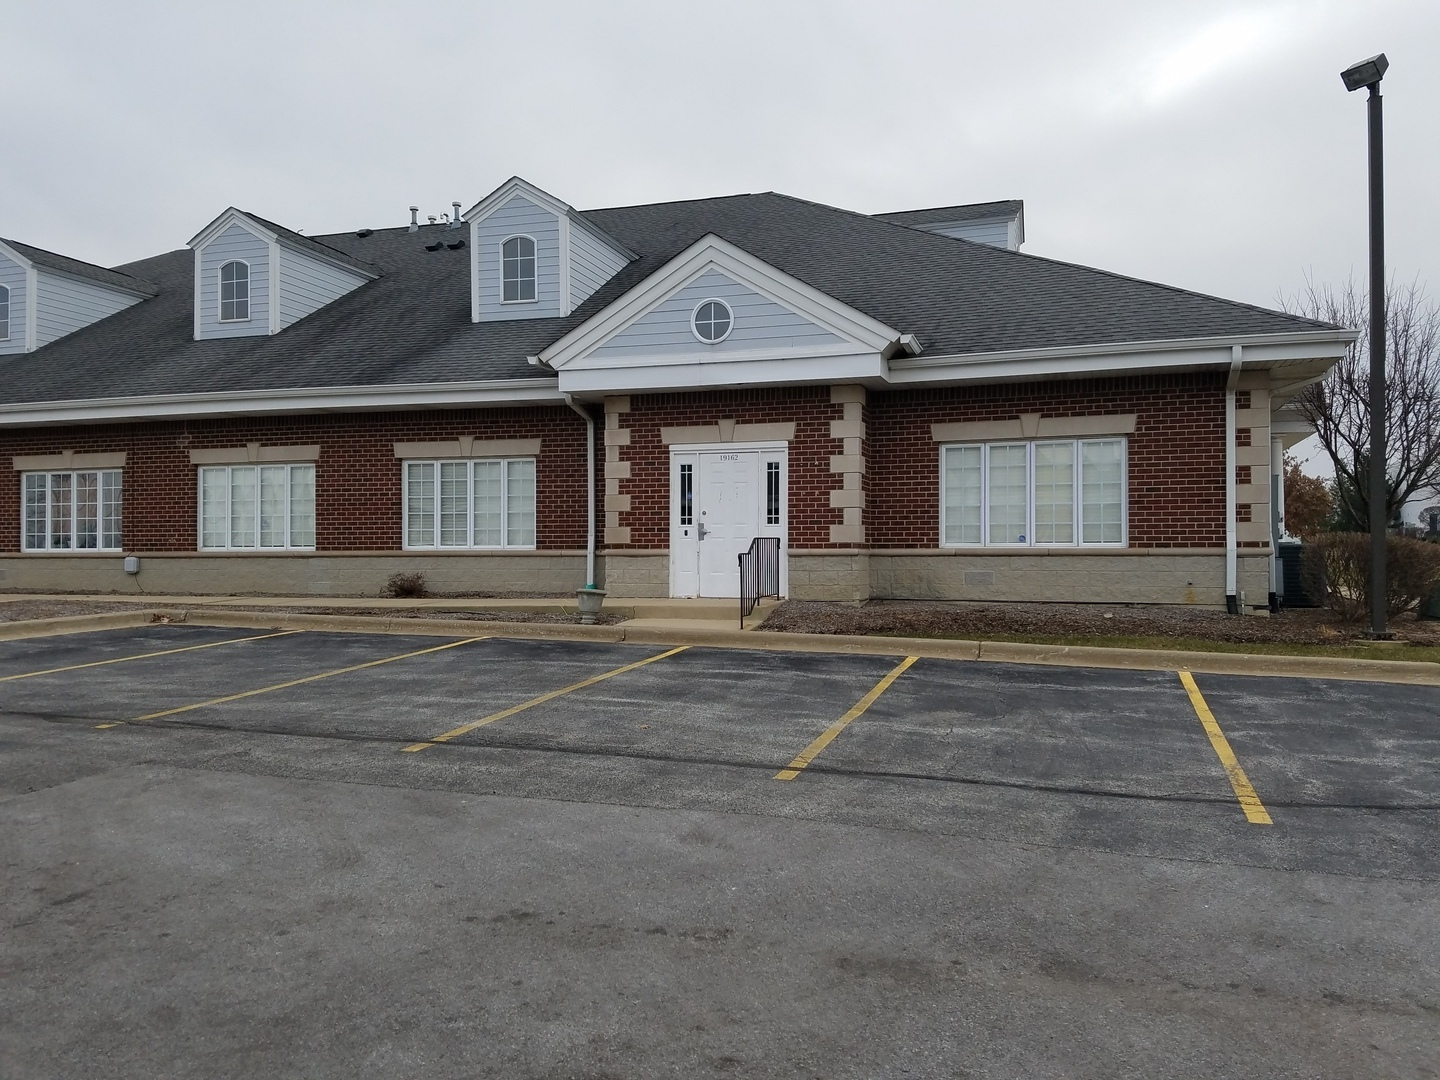 Property for sale at 19162-64 88th Avenue, Mokena,  Il 60448